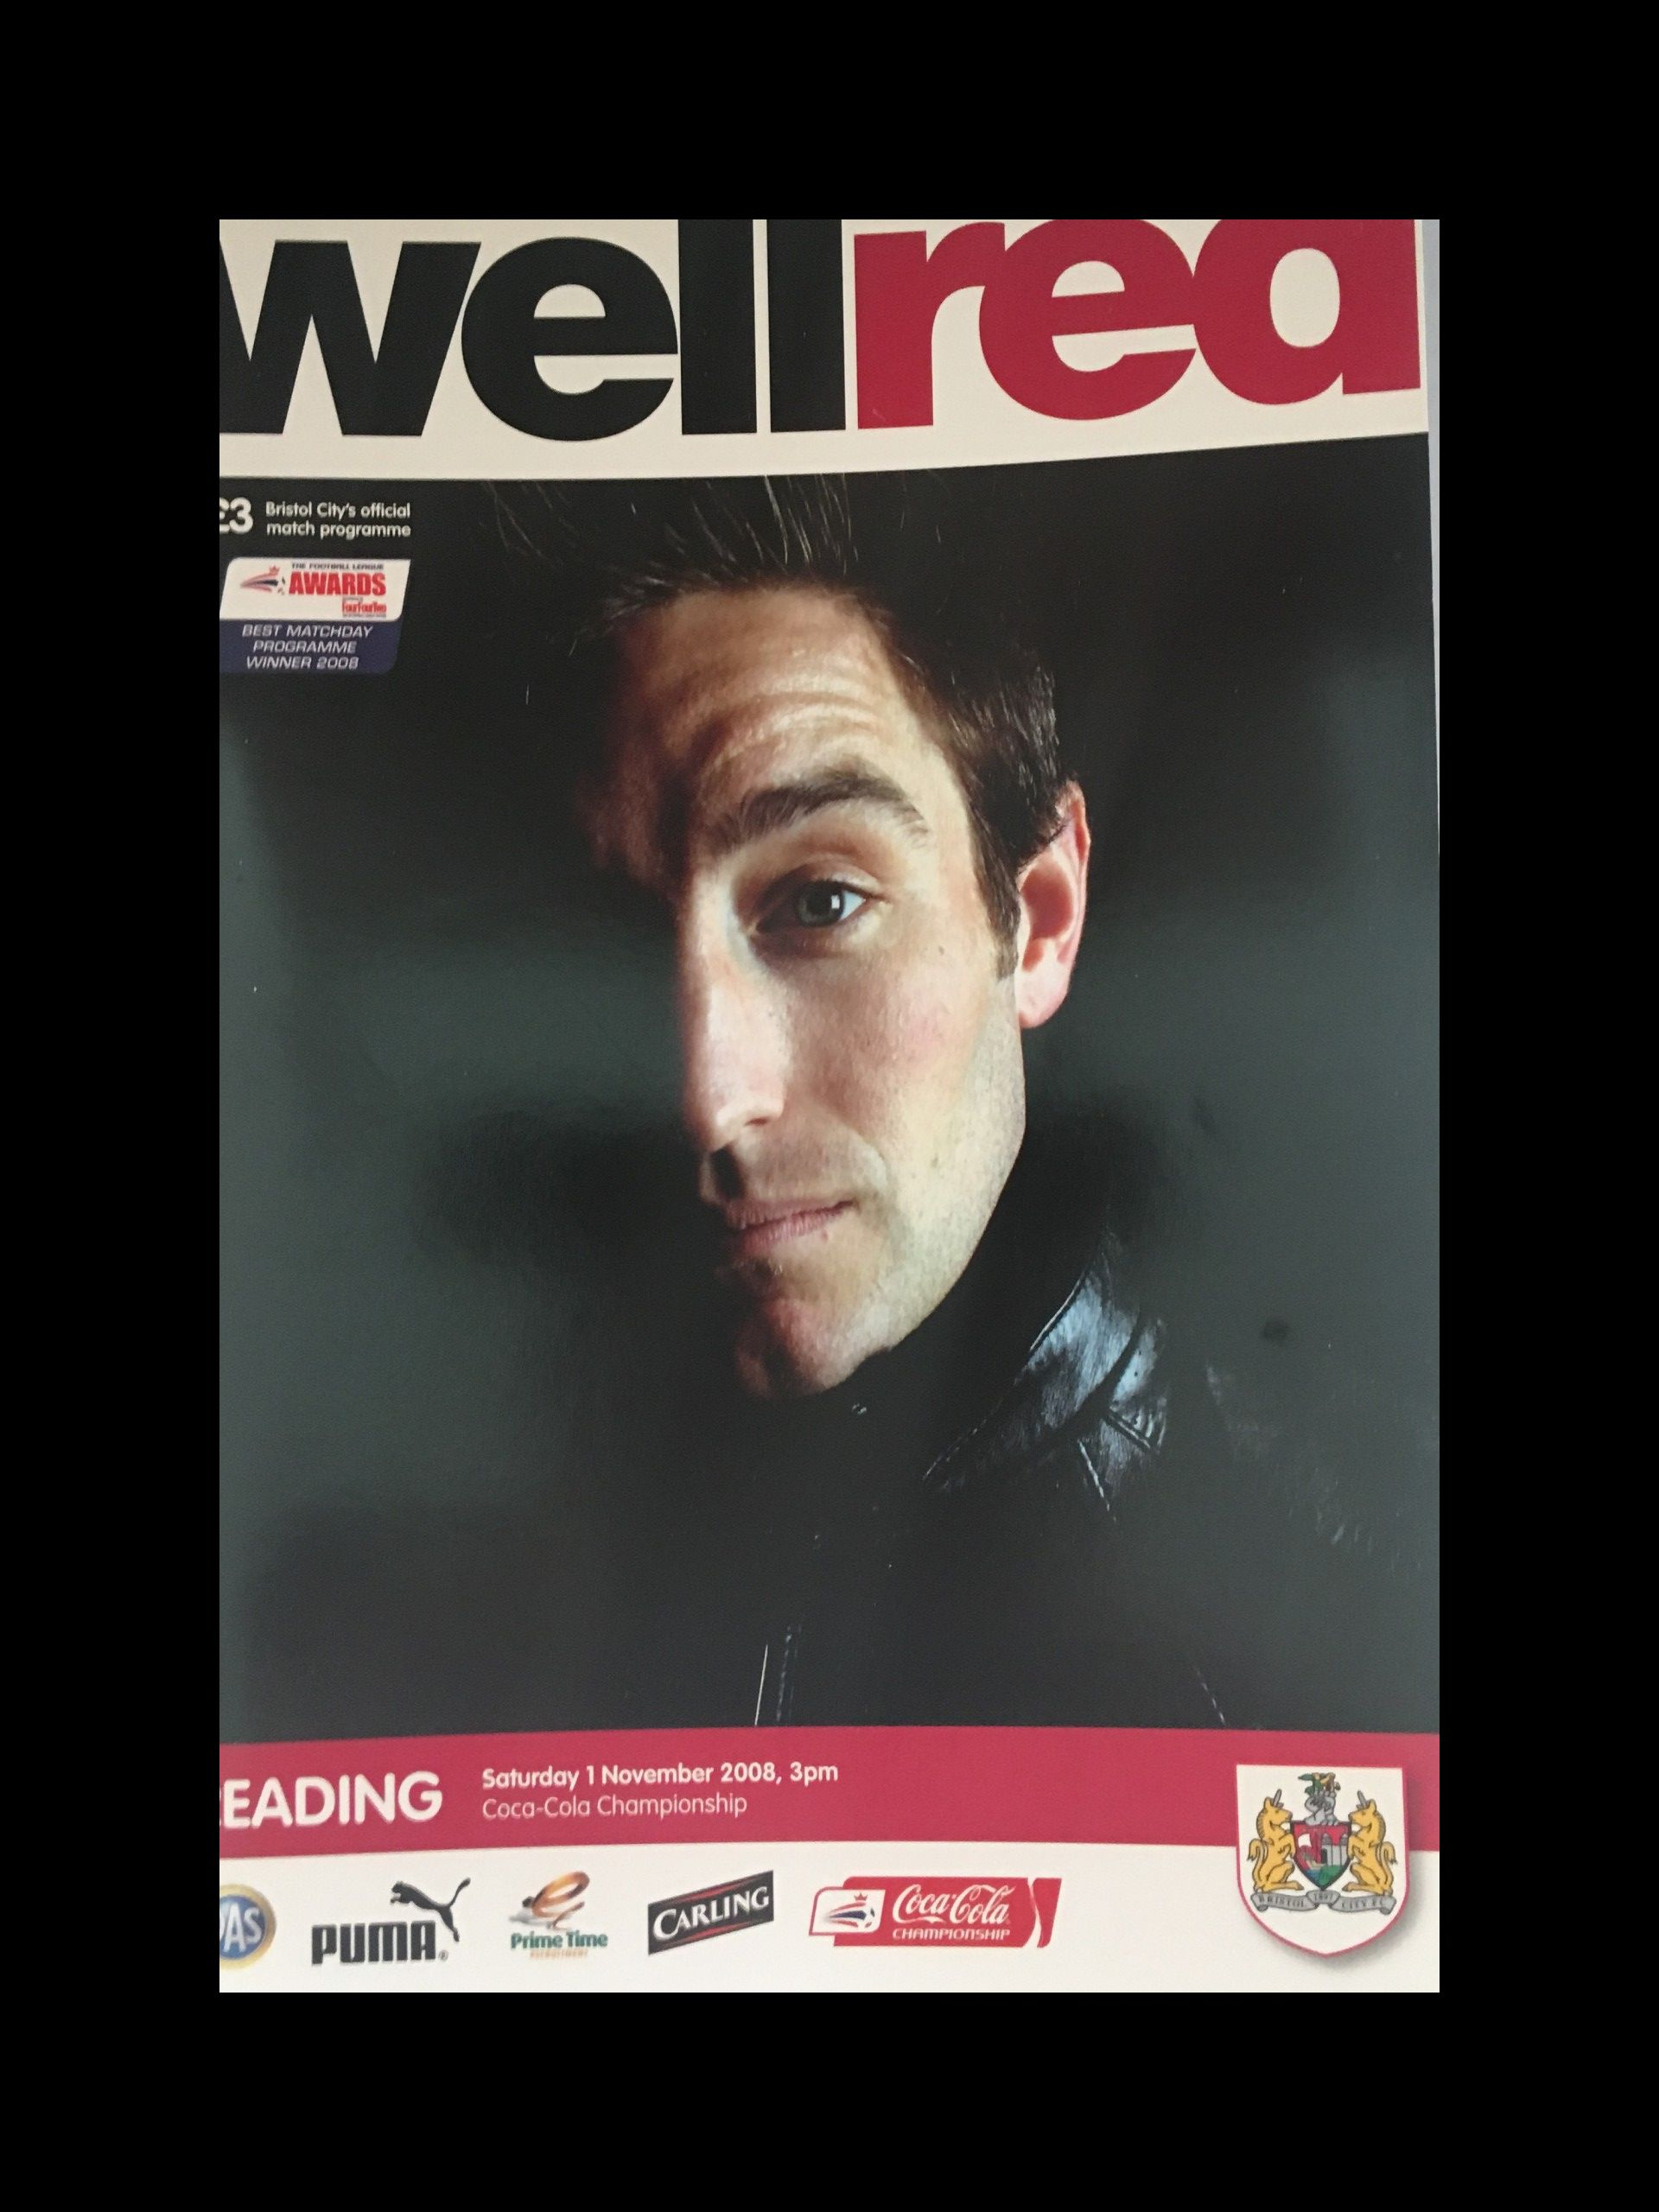 Bristol City v Reading 01-11-2008 Programme